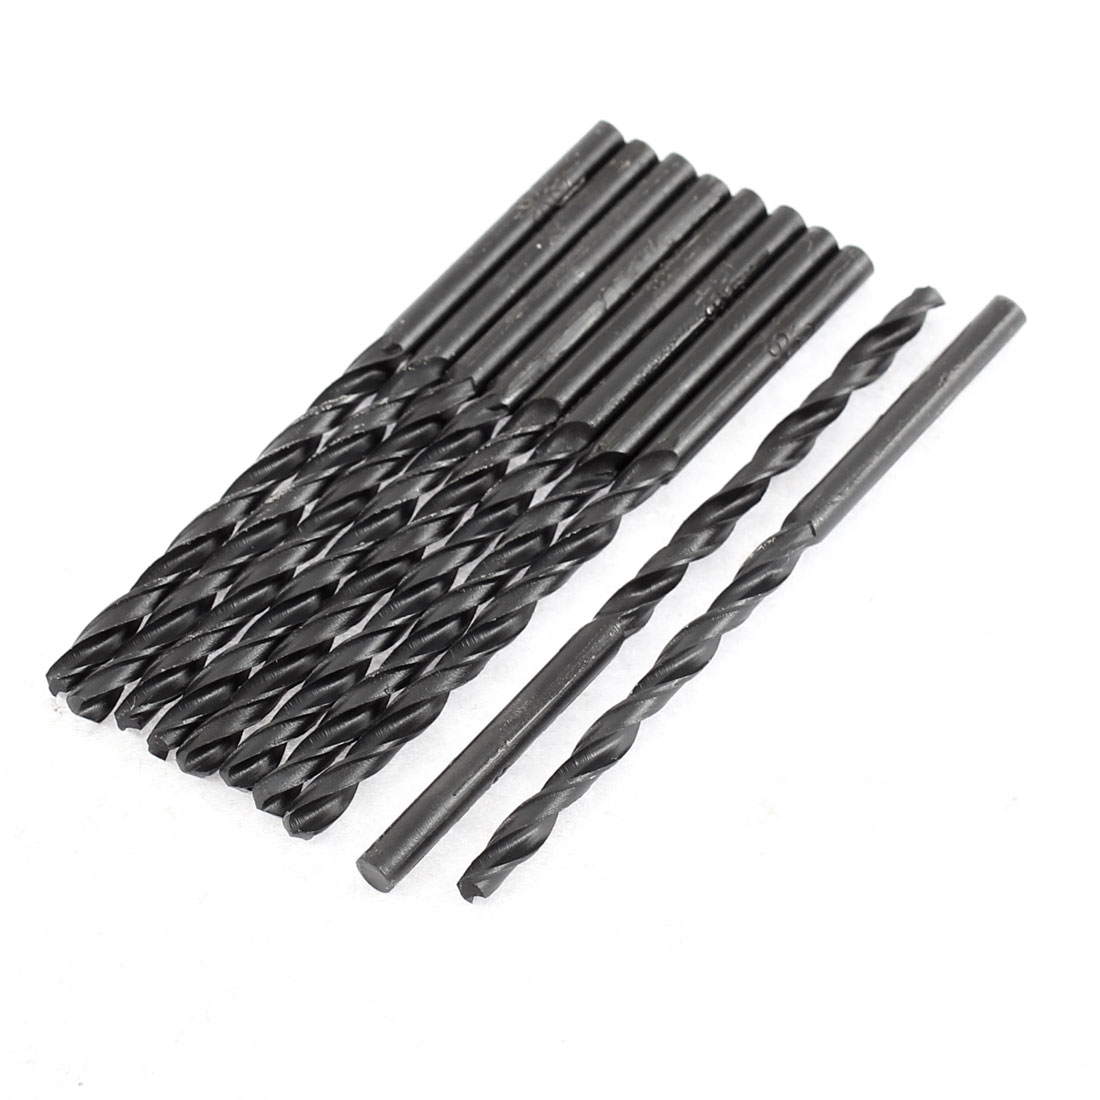 3.2mm Cutting Dia 65mm Length HSS Round Shank Twist Drill Bit Black 10pcs